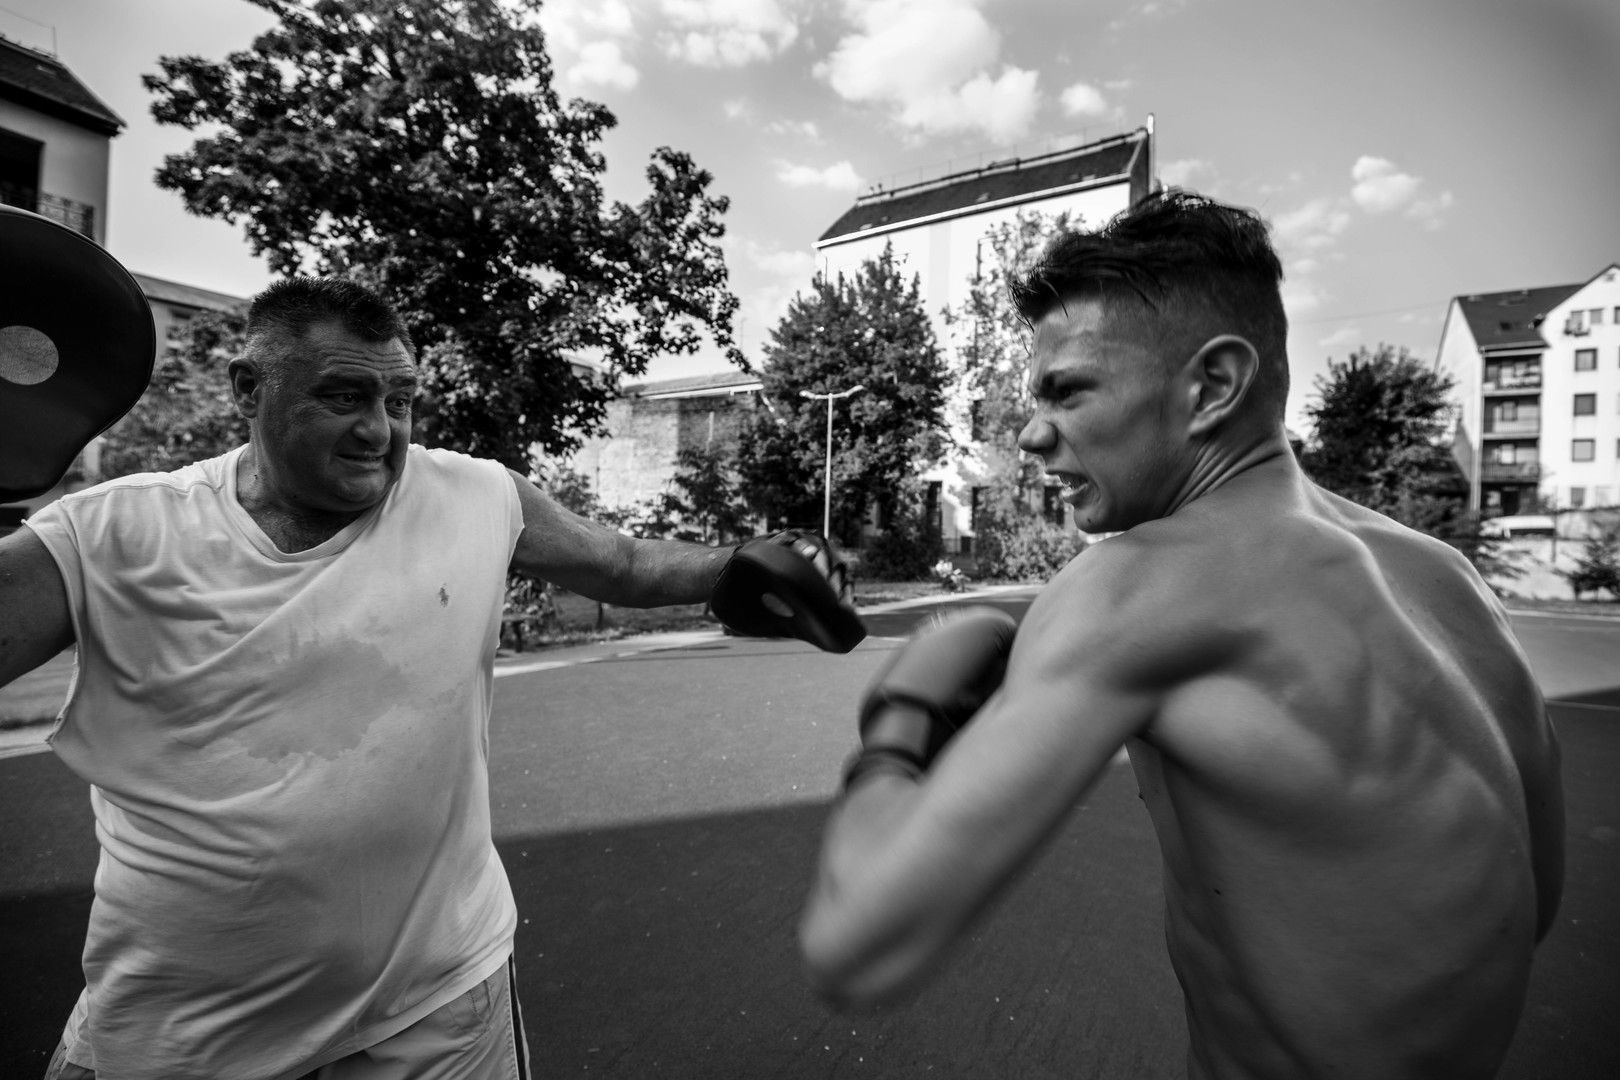 """Ghetto Balboa - Director: Árpád Bogdán This film follows a boxing coach and his trainee from the very beginning to the first successes. Both characters are of Roma origins from the infamous Ghetto in the middle of Budapest. Misi Sipos is an ex-member of the 8th district mafia who turned to God and left behind his criminal past. As his personal """"mission"""" he started a local community boxing club aimed at young children from troubled families. Zoli Szabó is one of these kids who, despite his young age, has to face up to the responsibility of providing for his family. He has a tough decision to make, as he either becomes a professional boxer, which comes with a lot of sacrifices or he follows in the footsteps of his mobster father.With QandA.Event in partnership with Cardiff Met."""